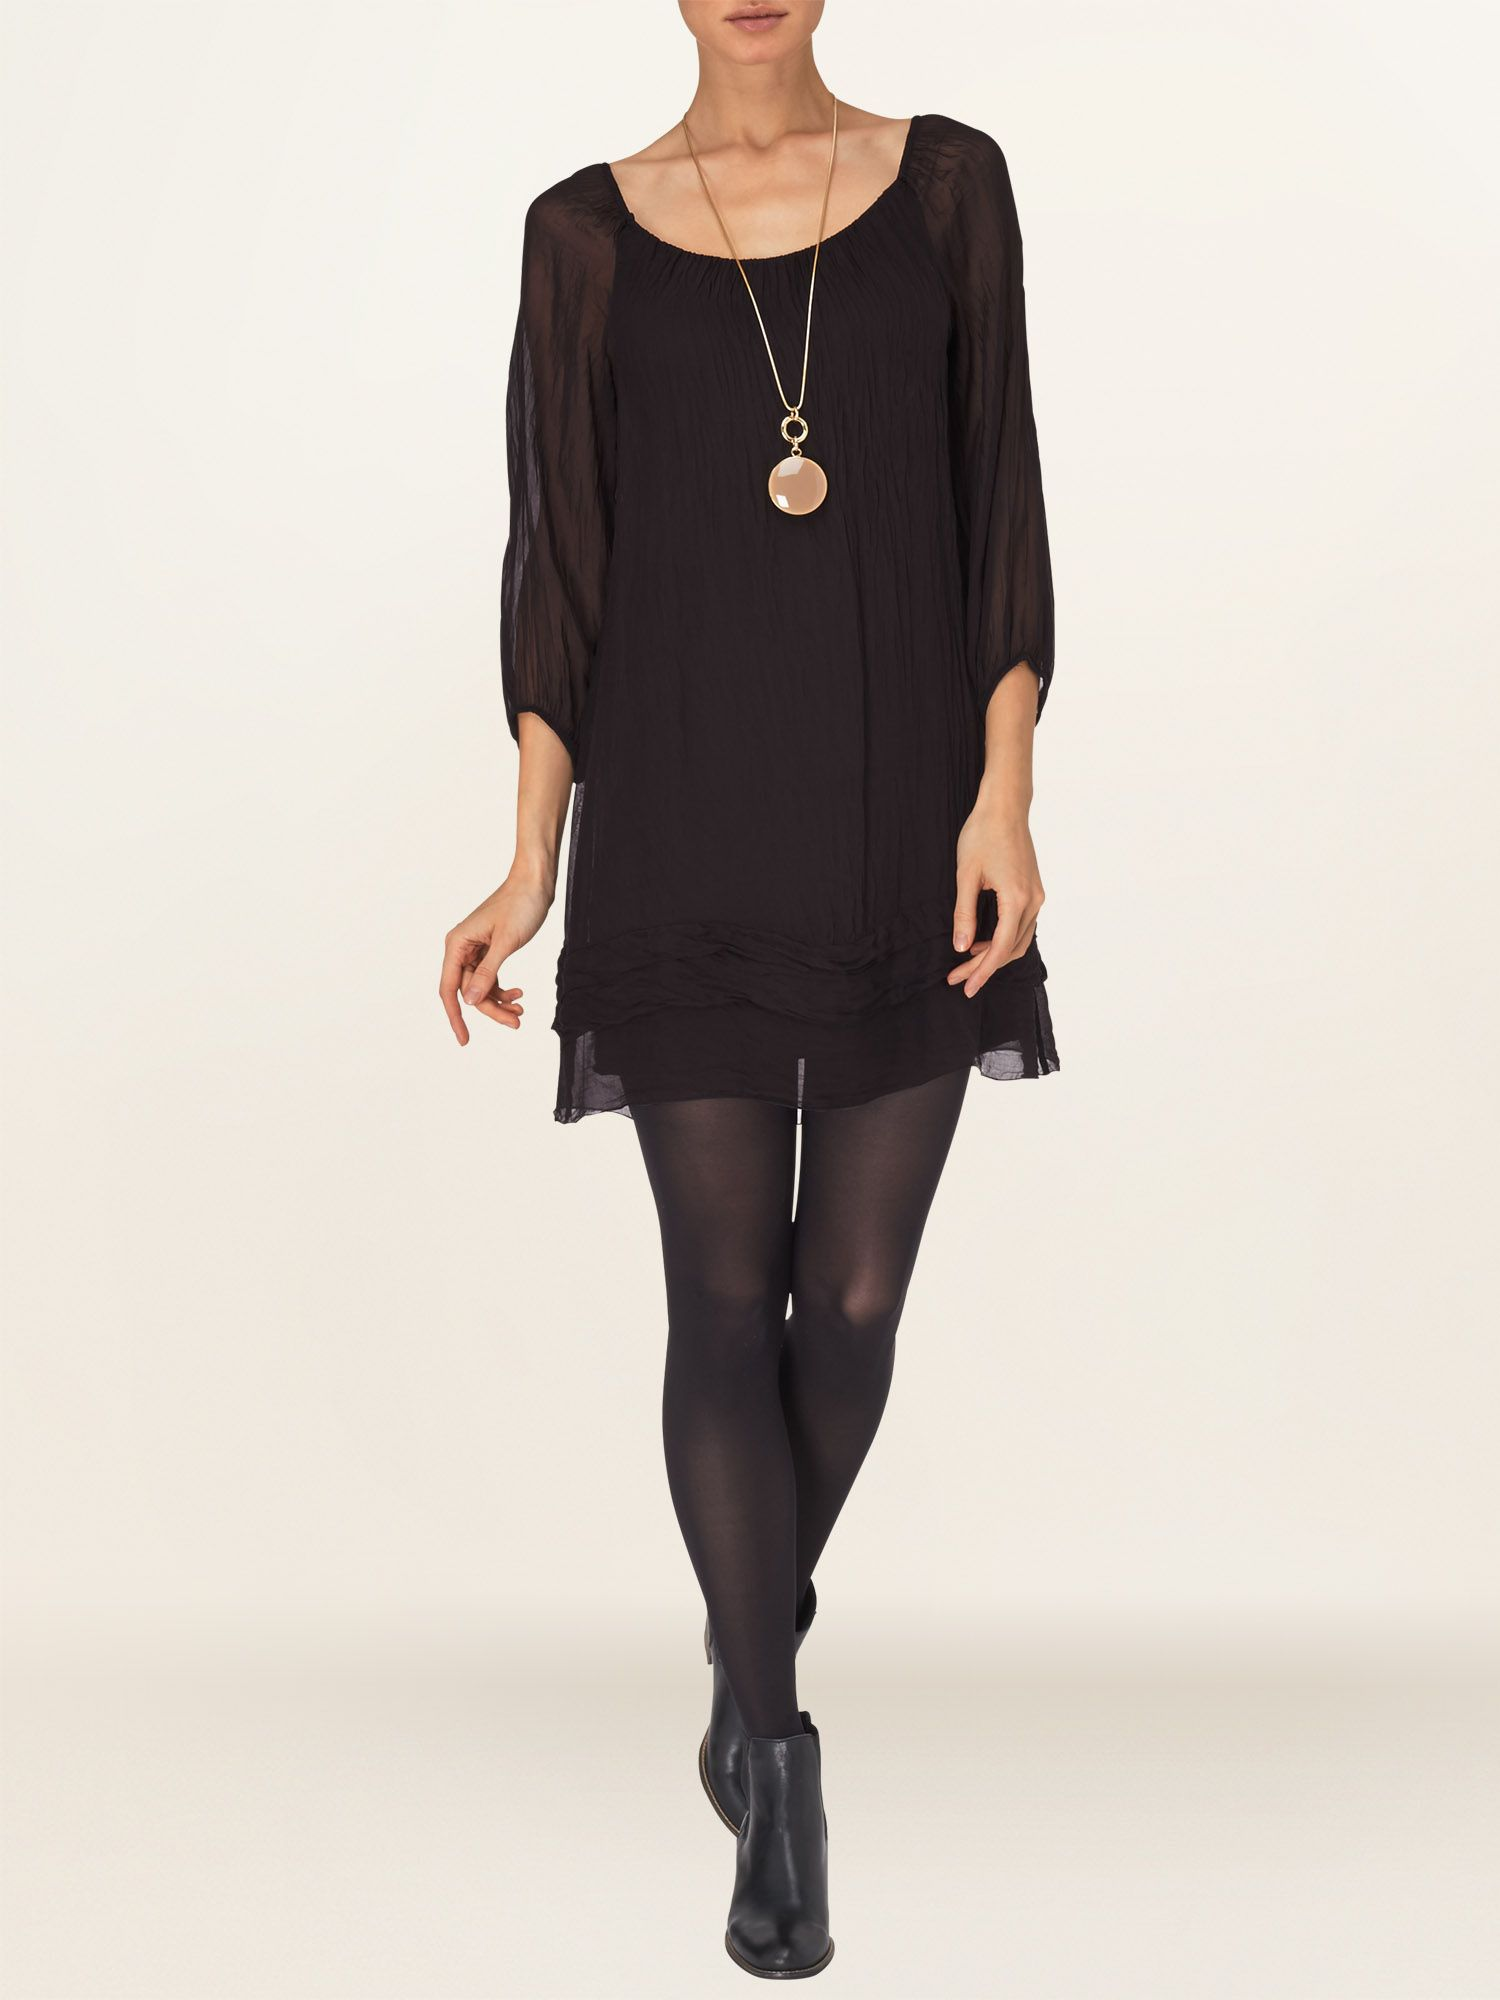 Mimi 3/4 sleeve dress